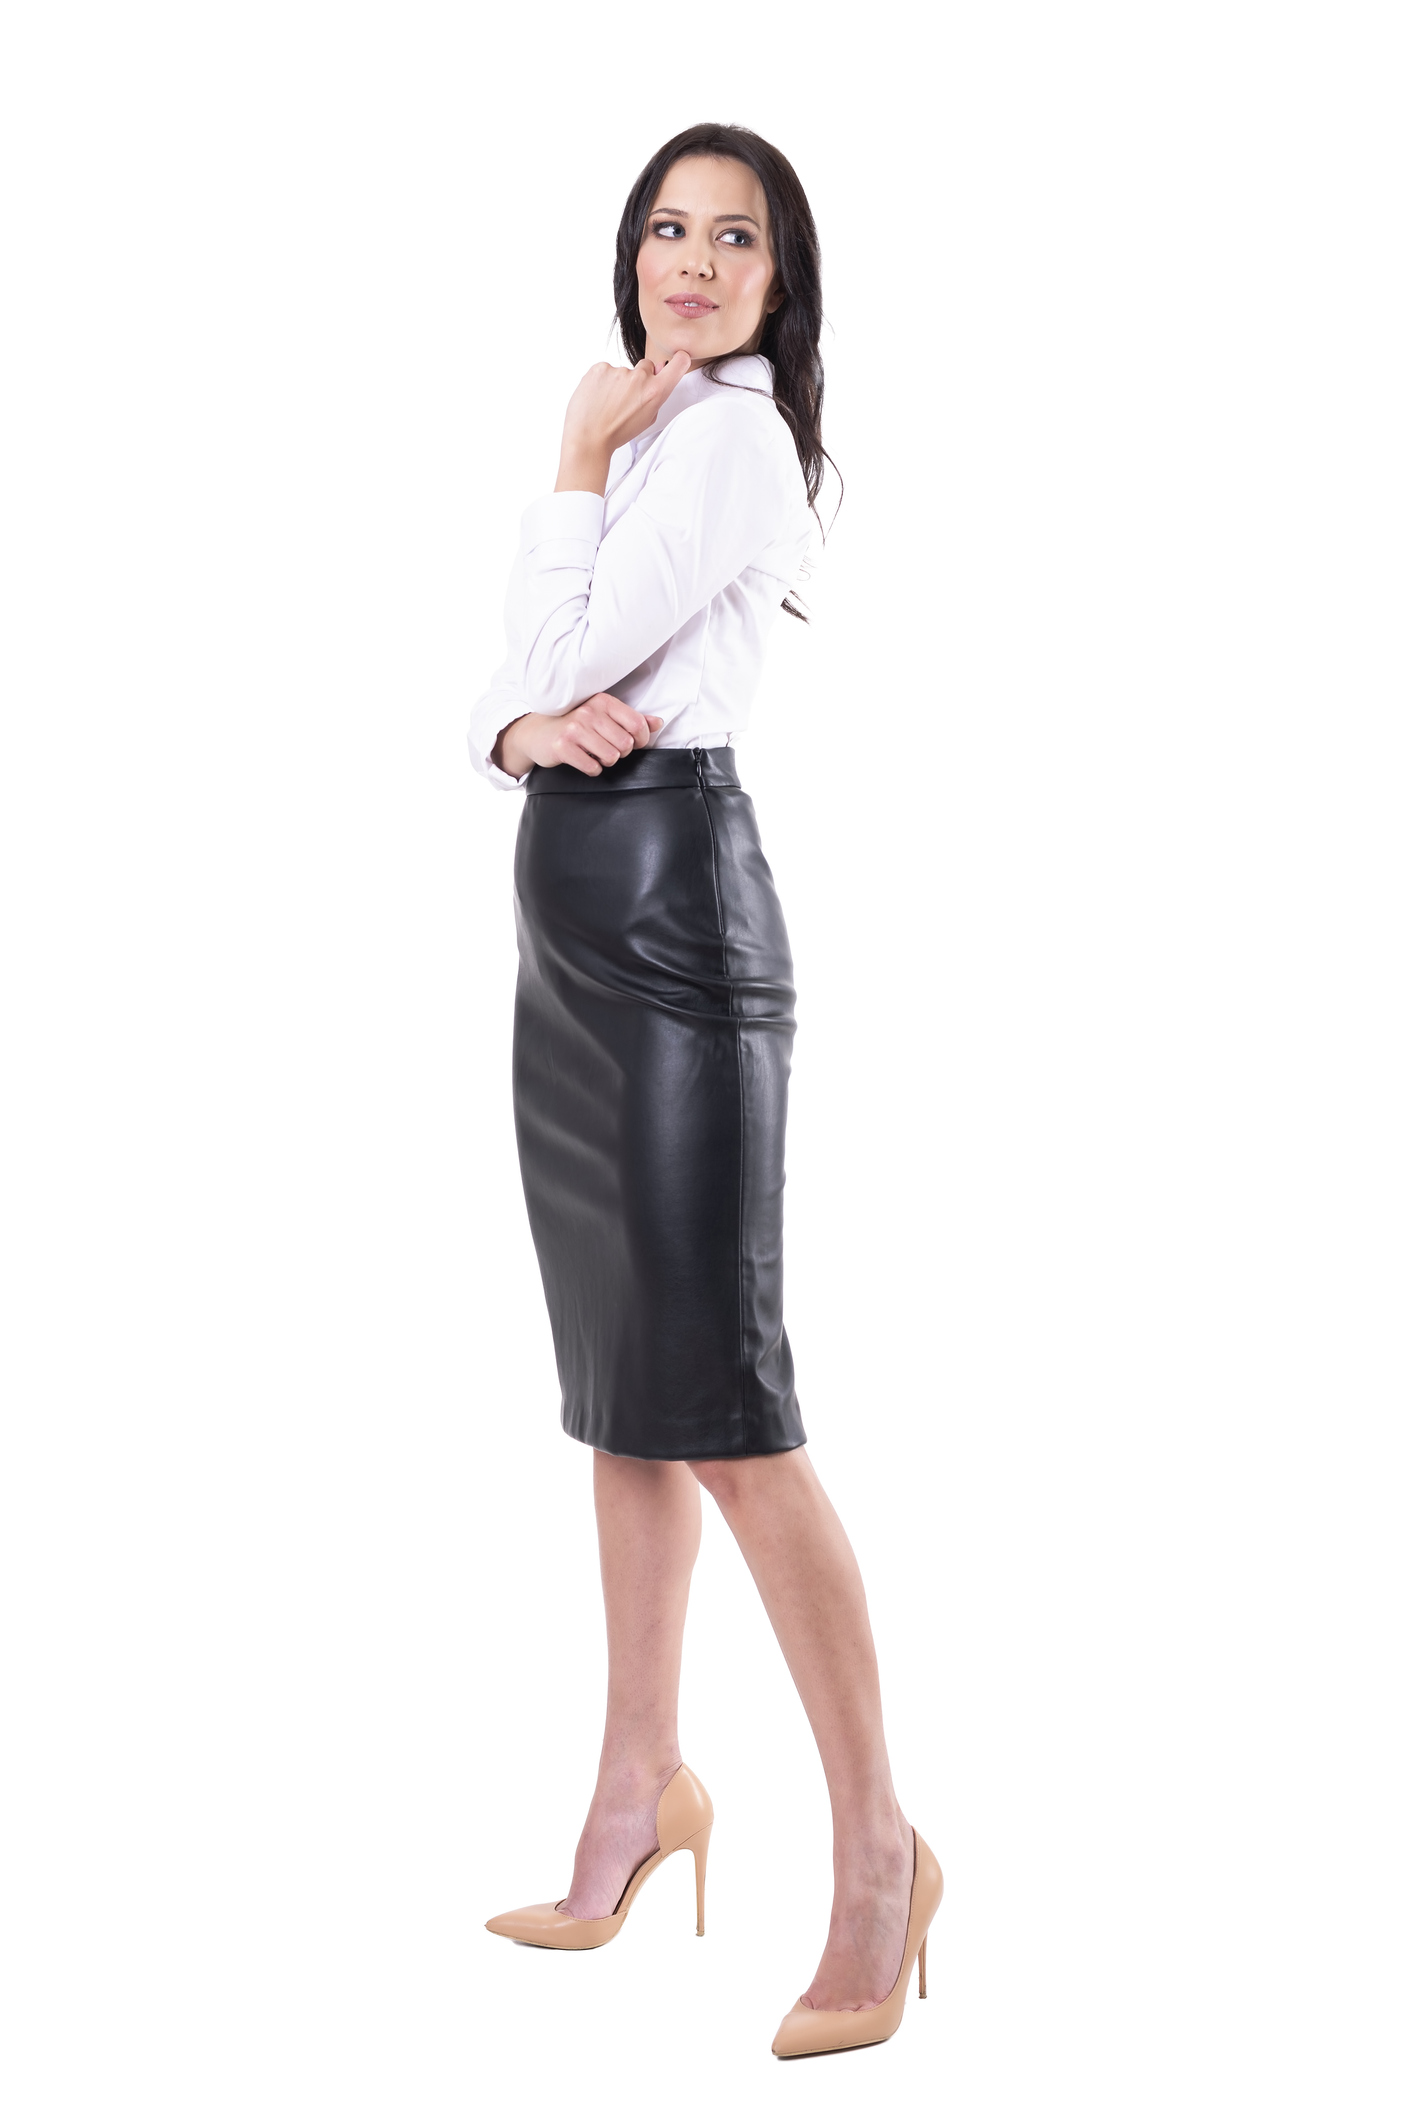 Uniqlo White Shirt and Faux Leather Skirt